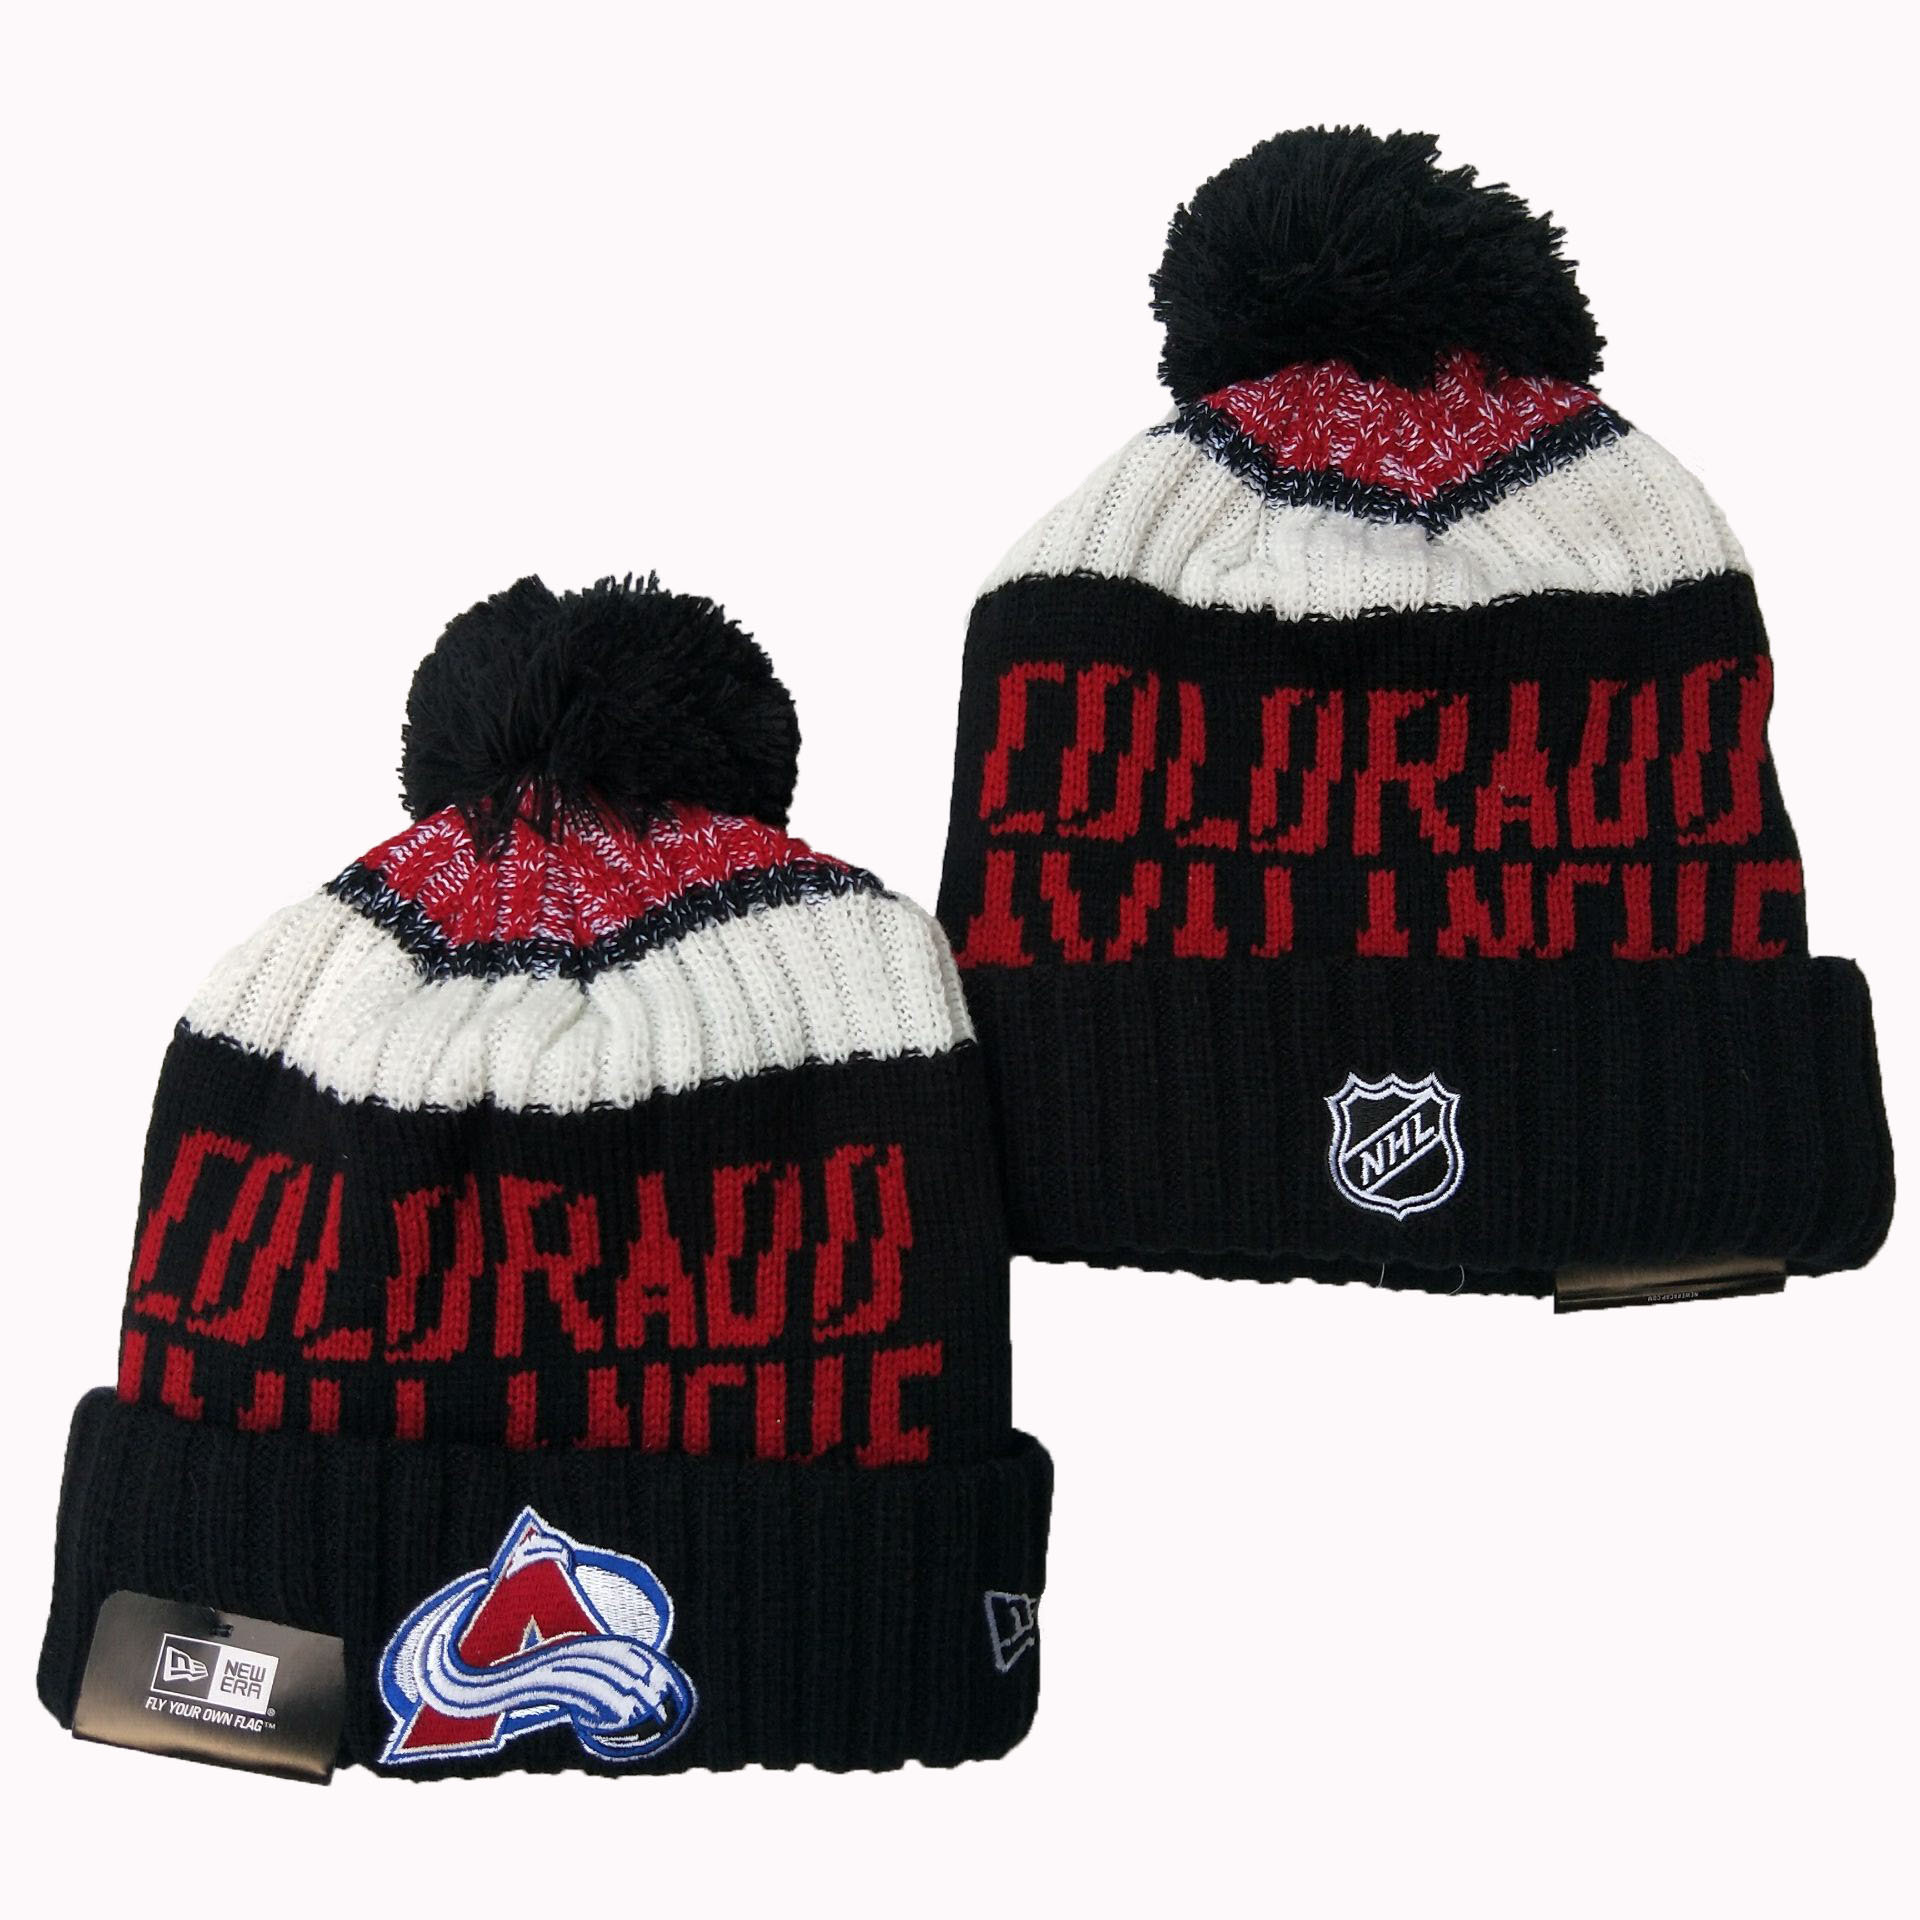 Avalanche Team Logo Black Pom Knit Hat YD